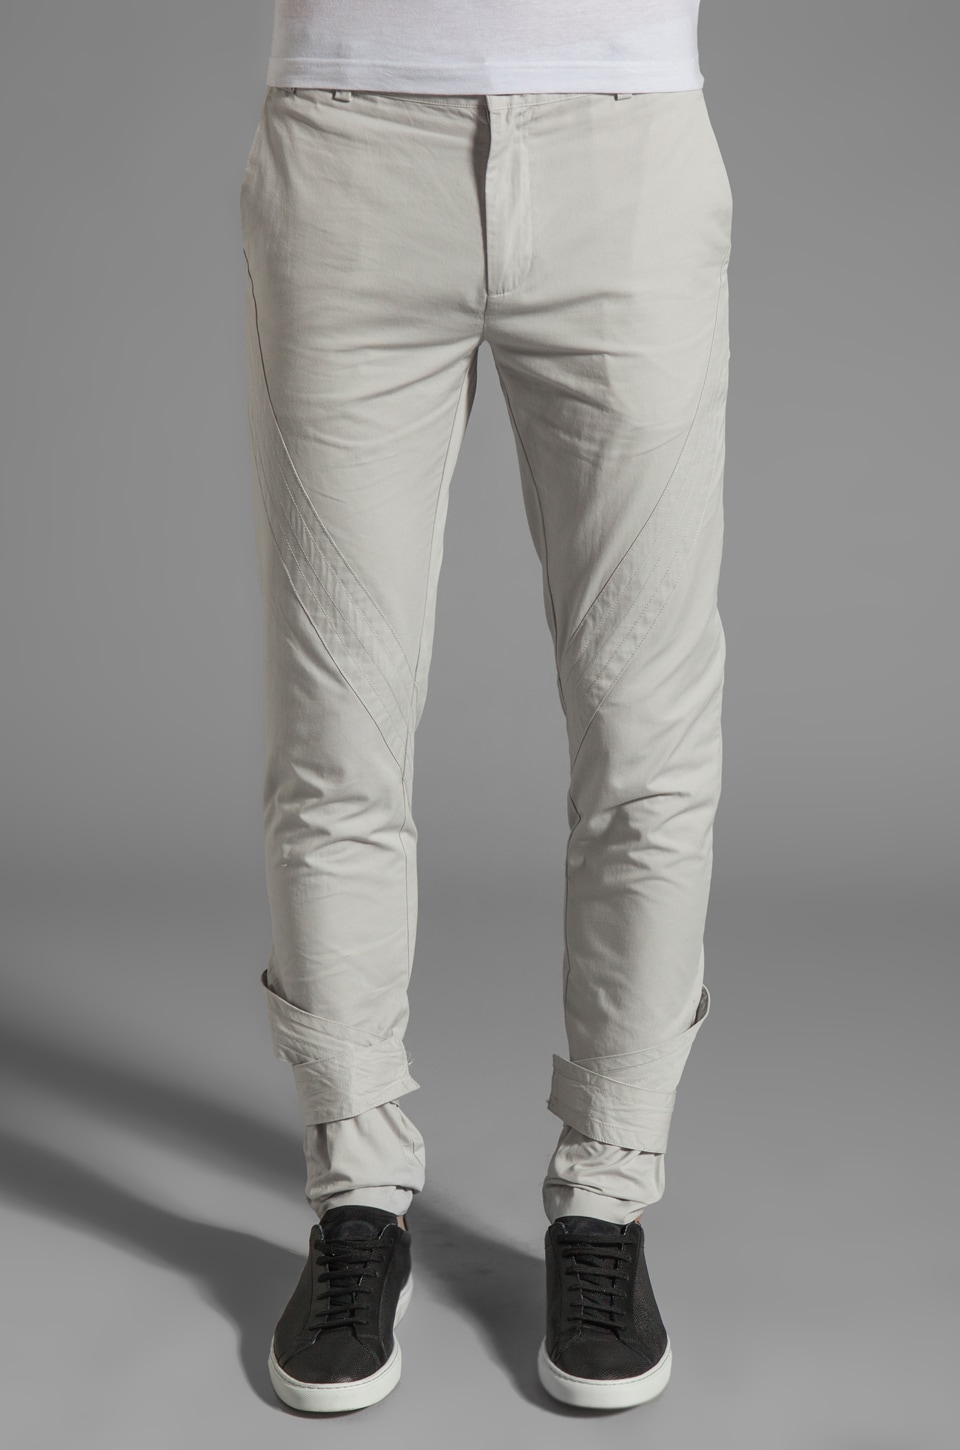 adidas SLVR Cavalry Pant in Light Grey